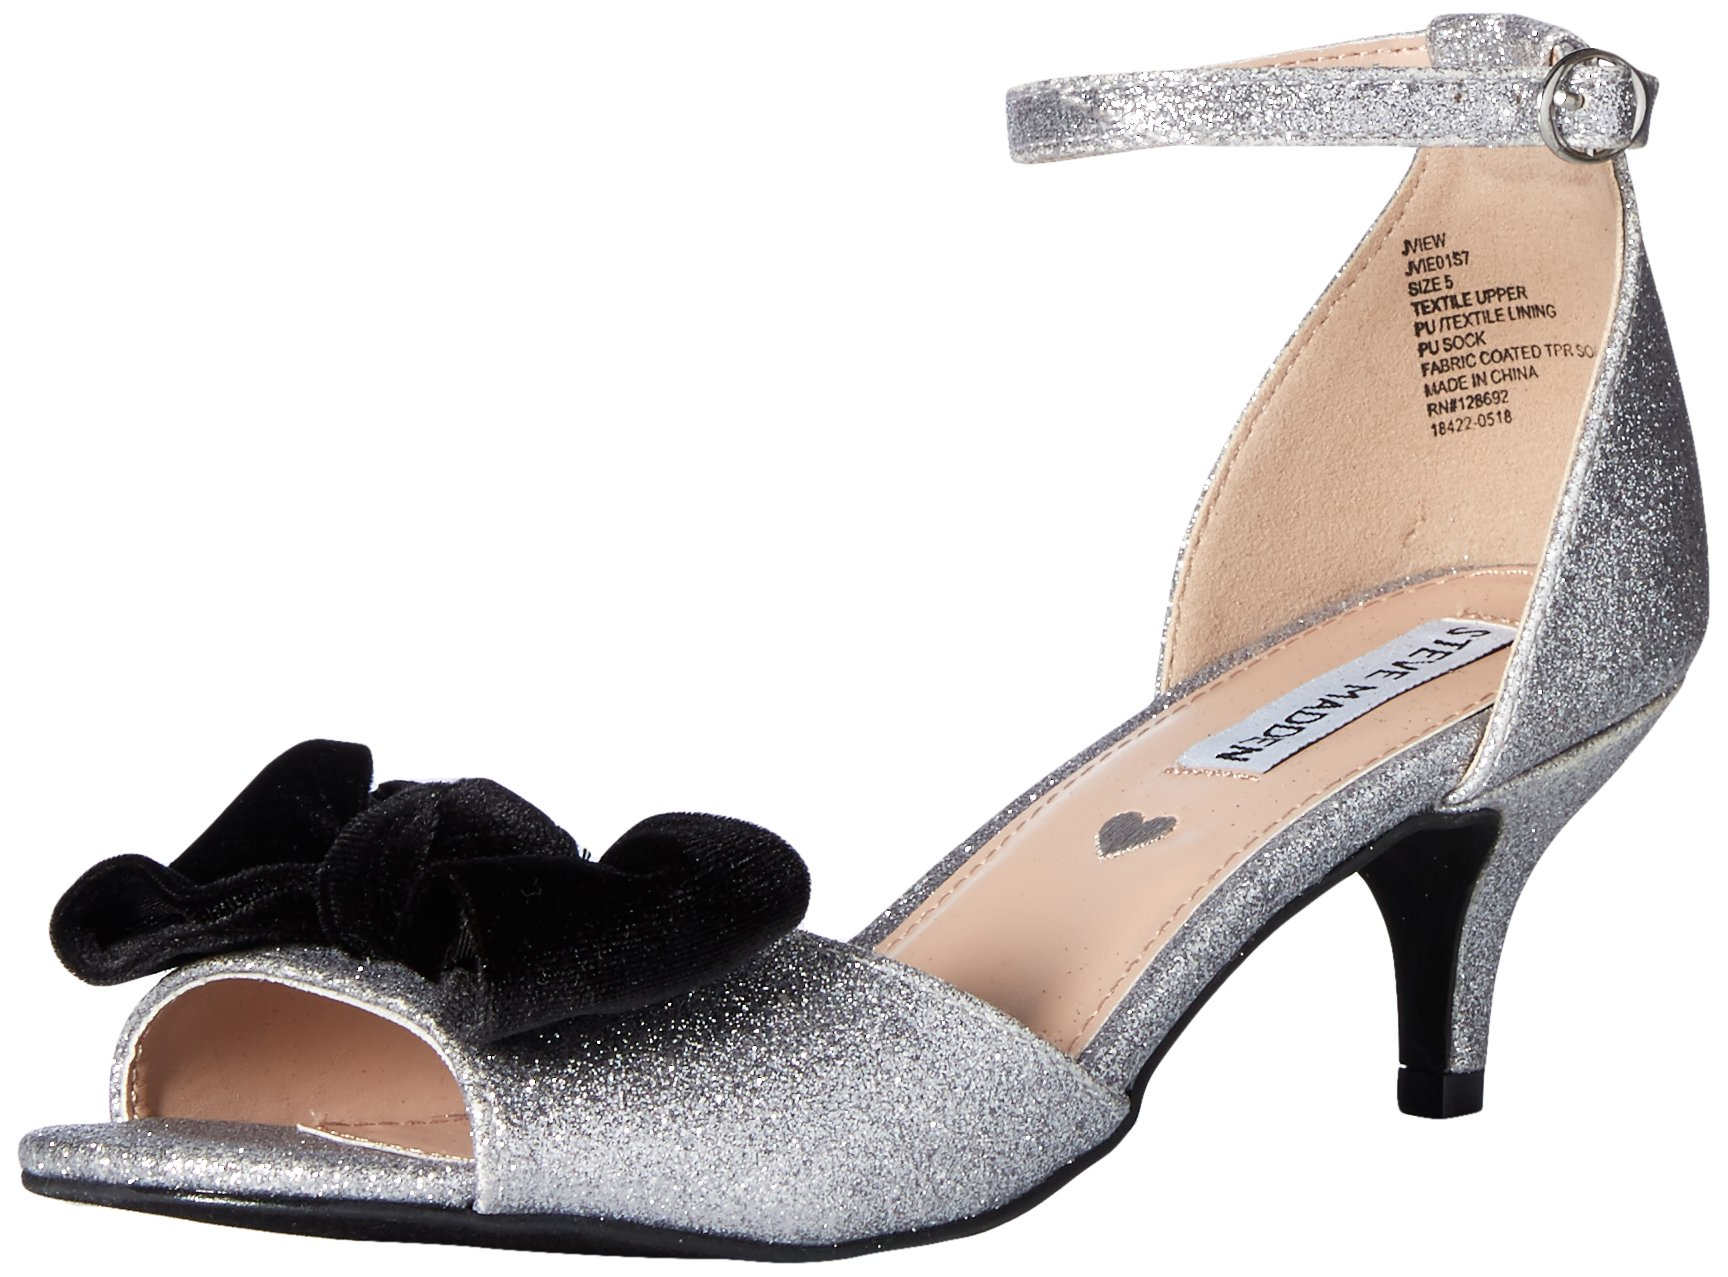 Steve Madden Girls' Jview Heeled Sandal, Silver, 5 M US Big Kid